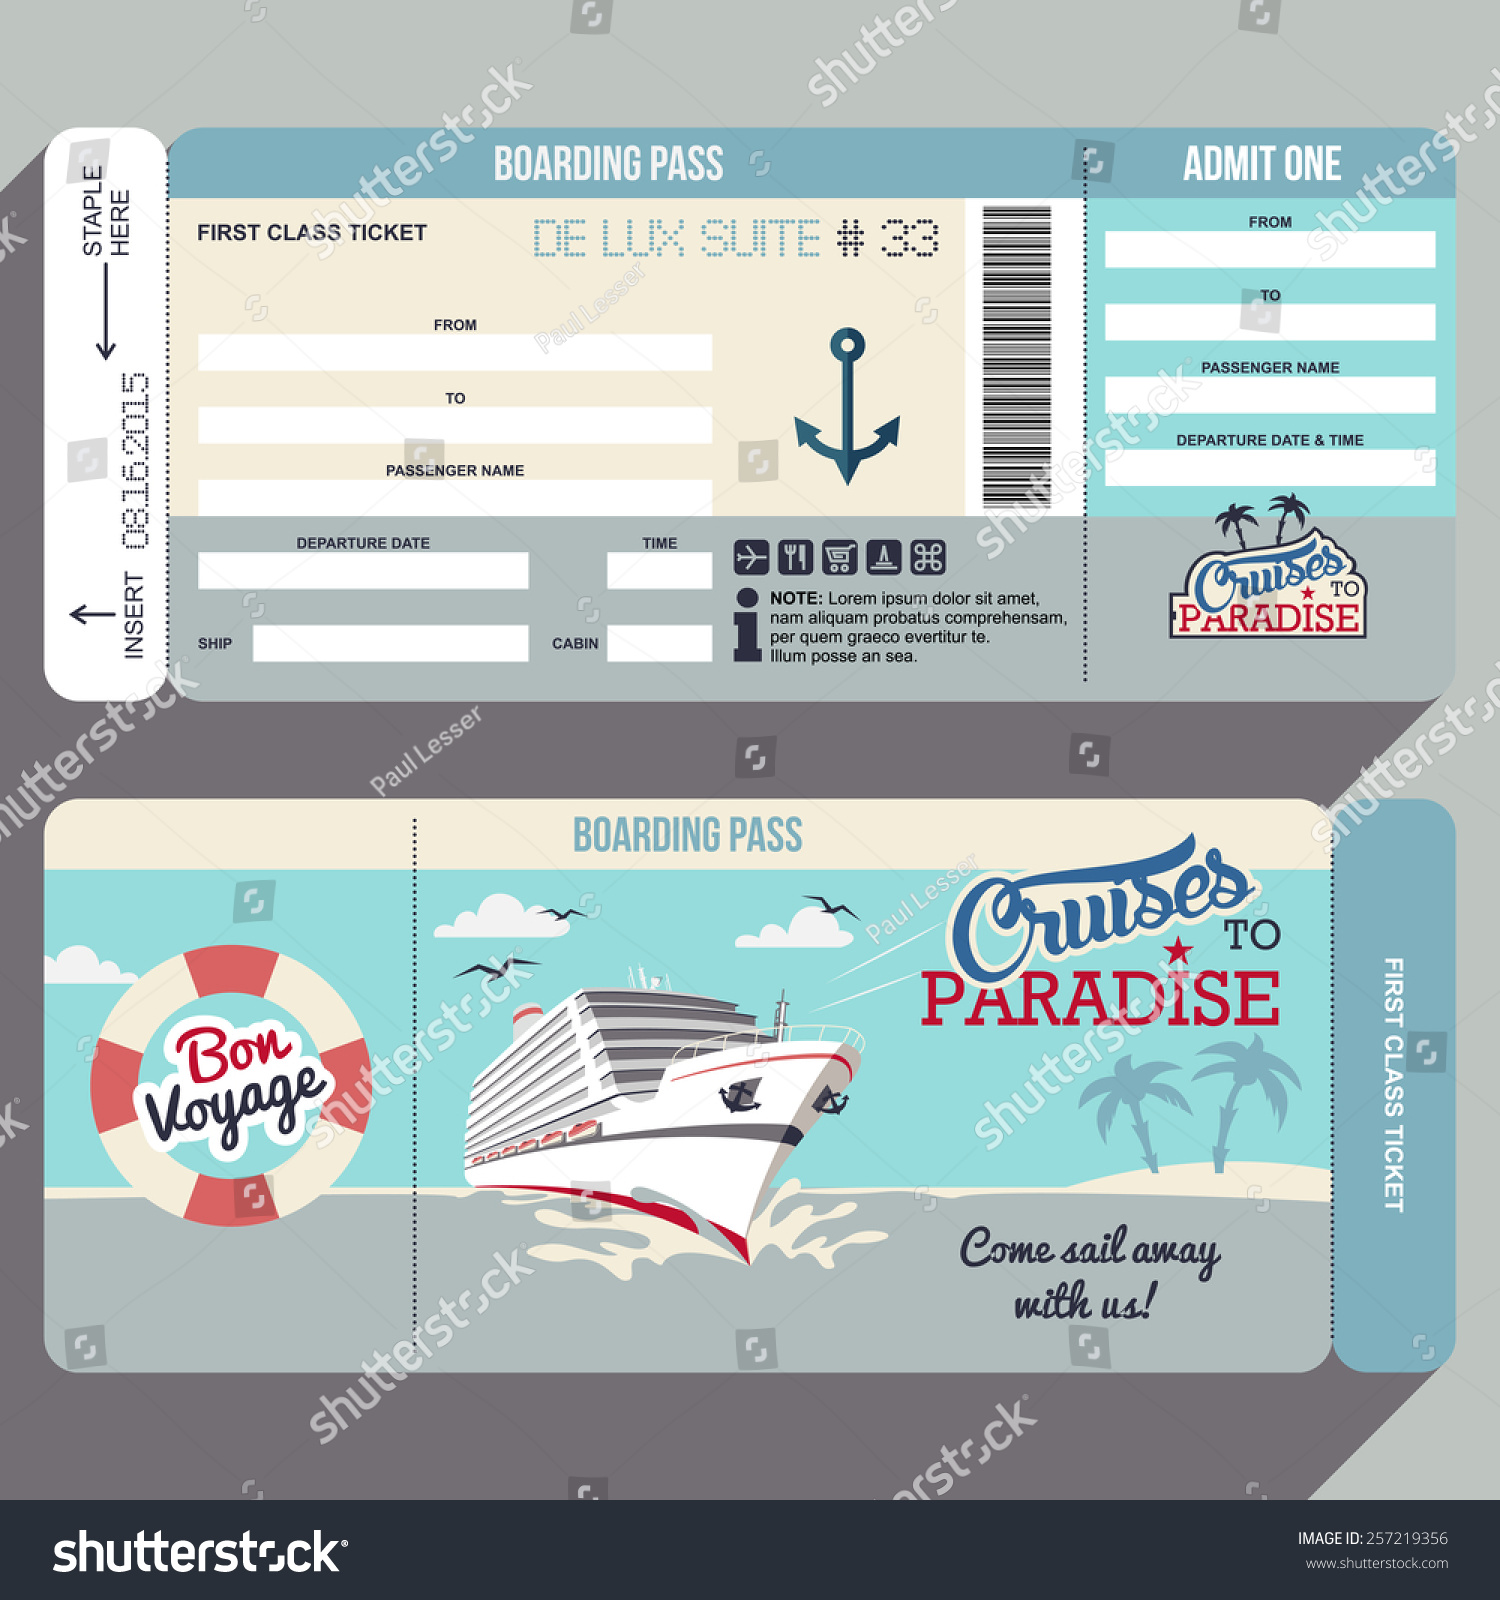 Royaltyfree Cruises To Paradise Cruise Ship Stock - How much is a cruise ship ticket